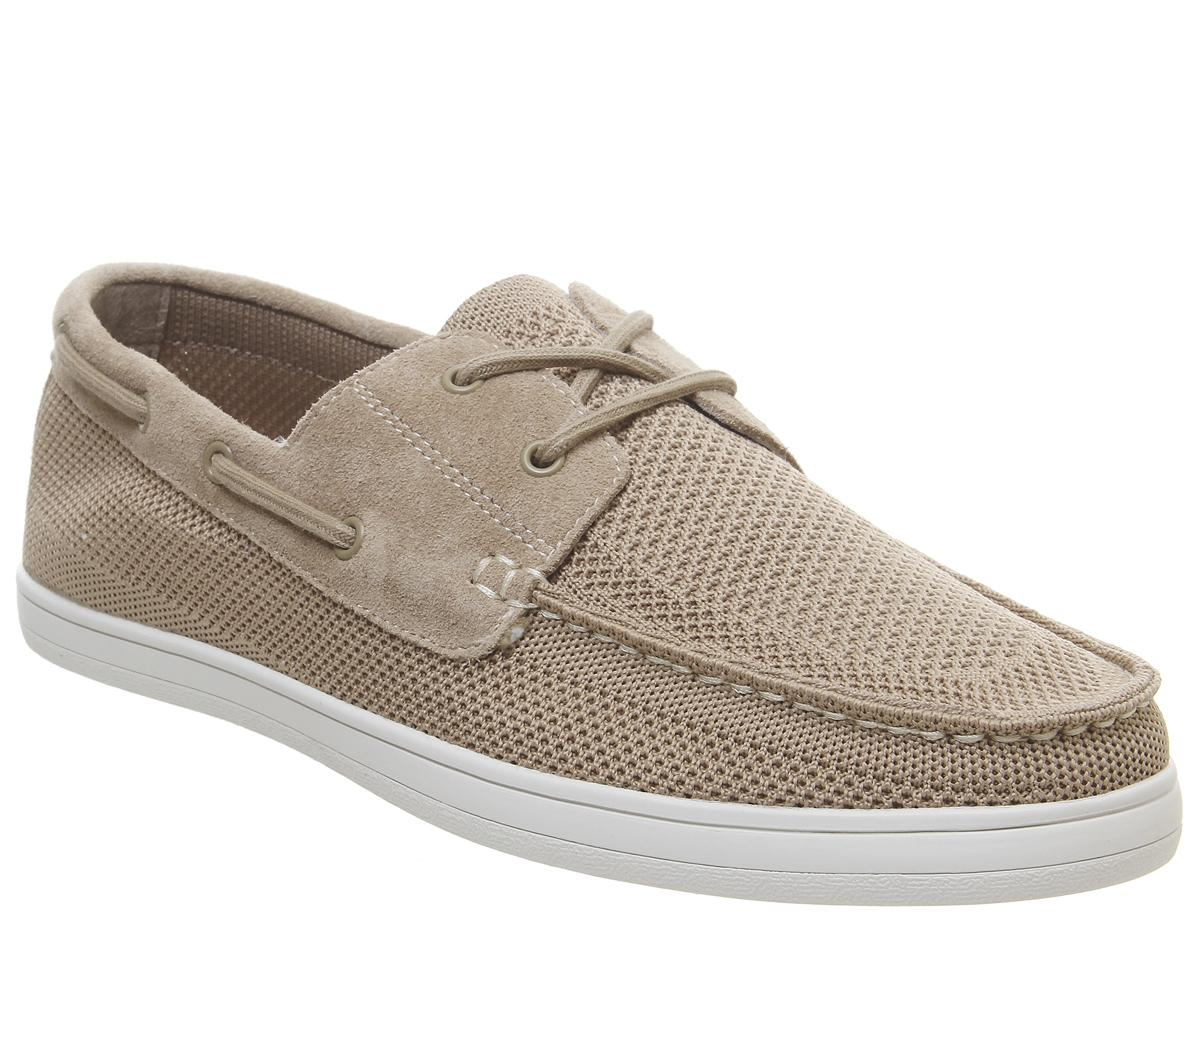 Life Boat Shoes